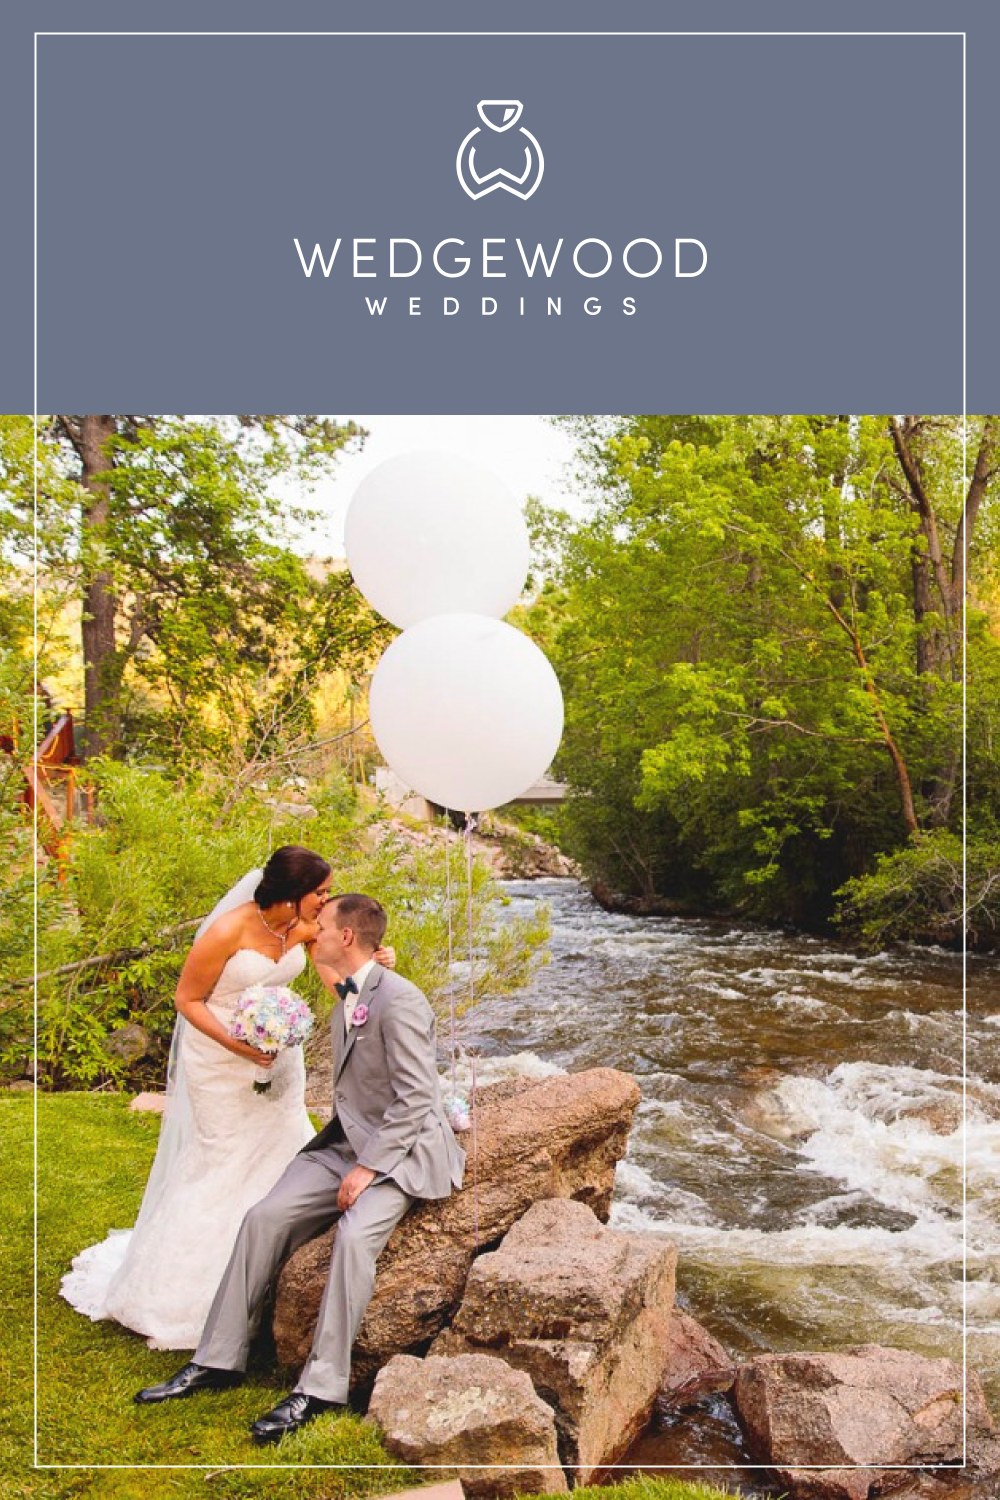 Don T Let Your Big Day Be Spoiled By The Little Things Planning A Wedding Starts Romantic Yet O Wedgewood Wedding Wedding Event Planning Easy Wedding Planning